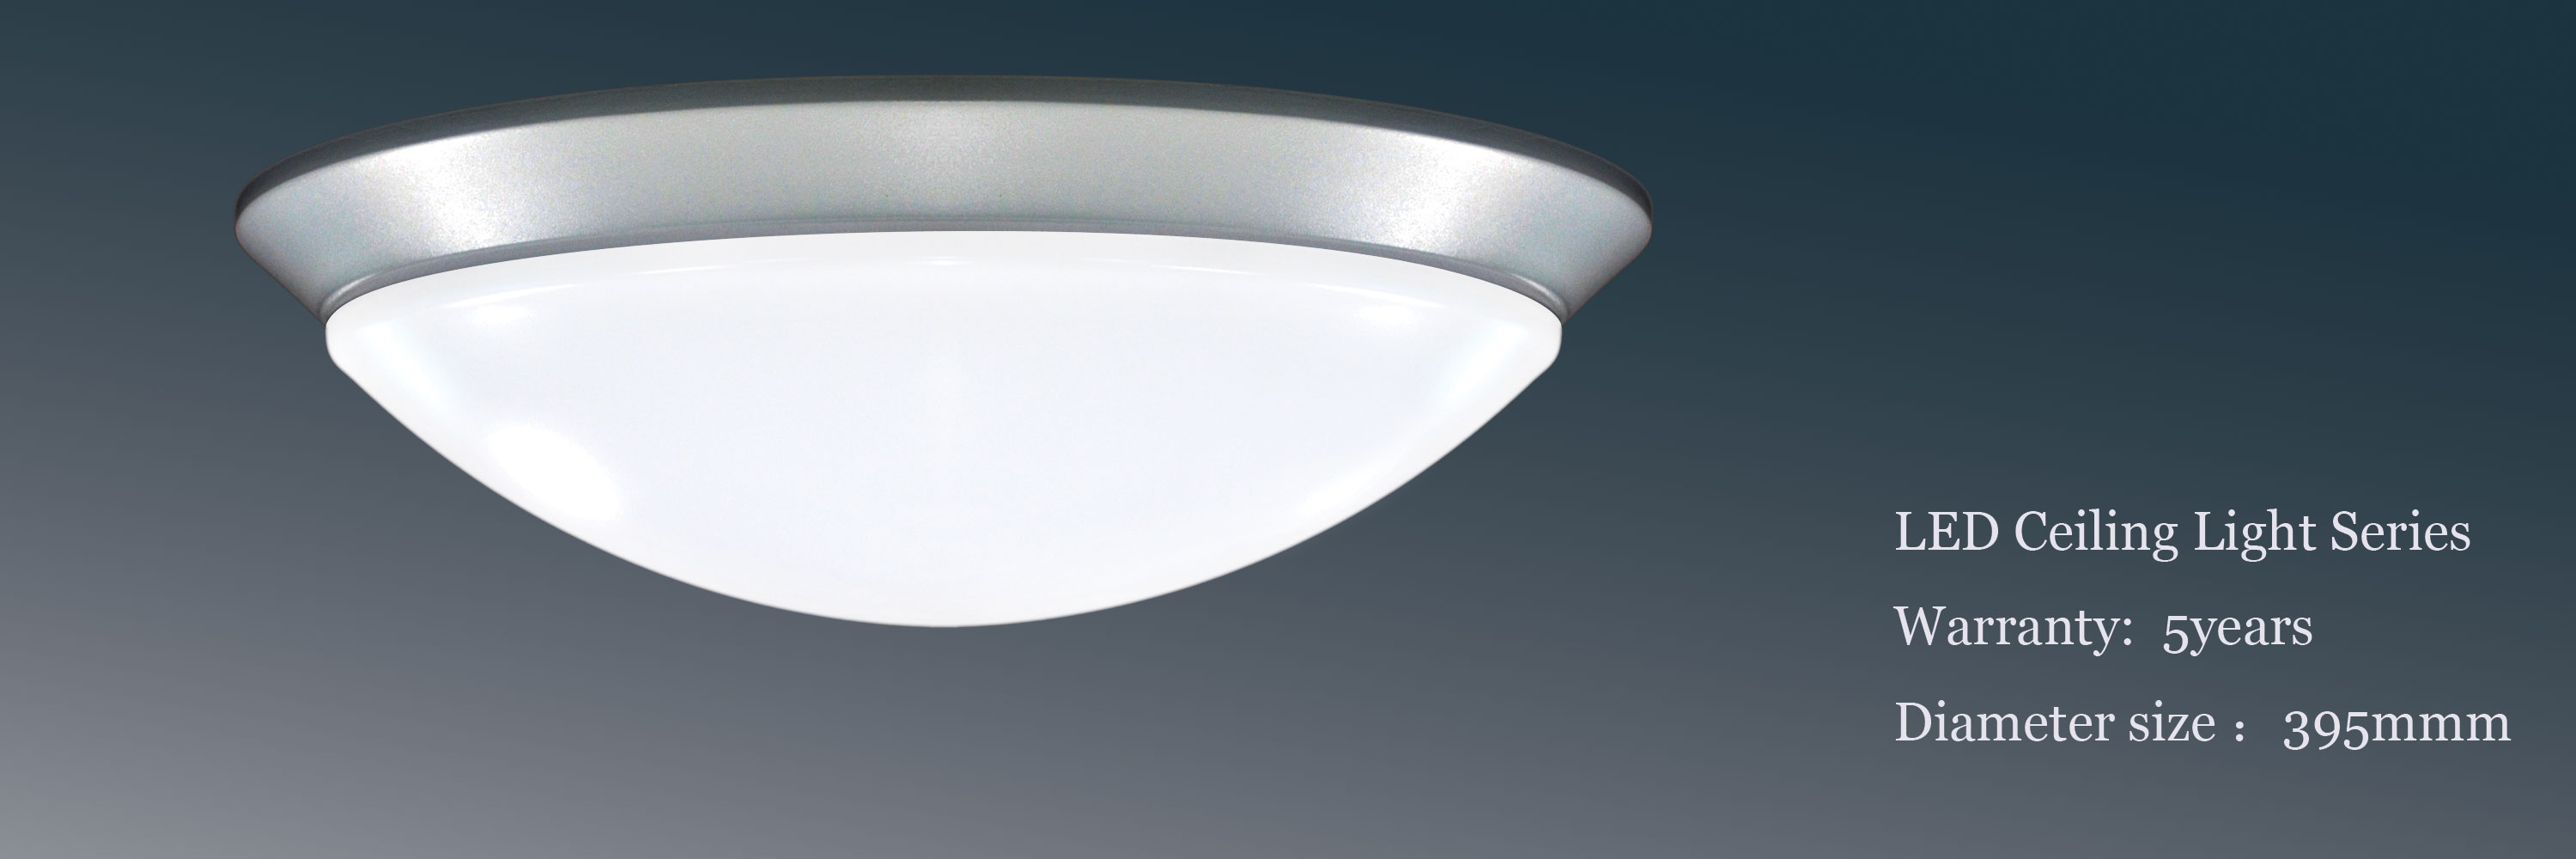 Ceiling Motion Light: ceiling motion sensor light photo - 1,Lighting